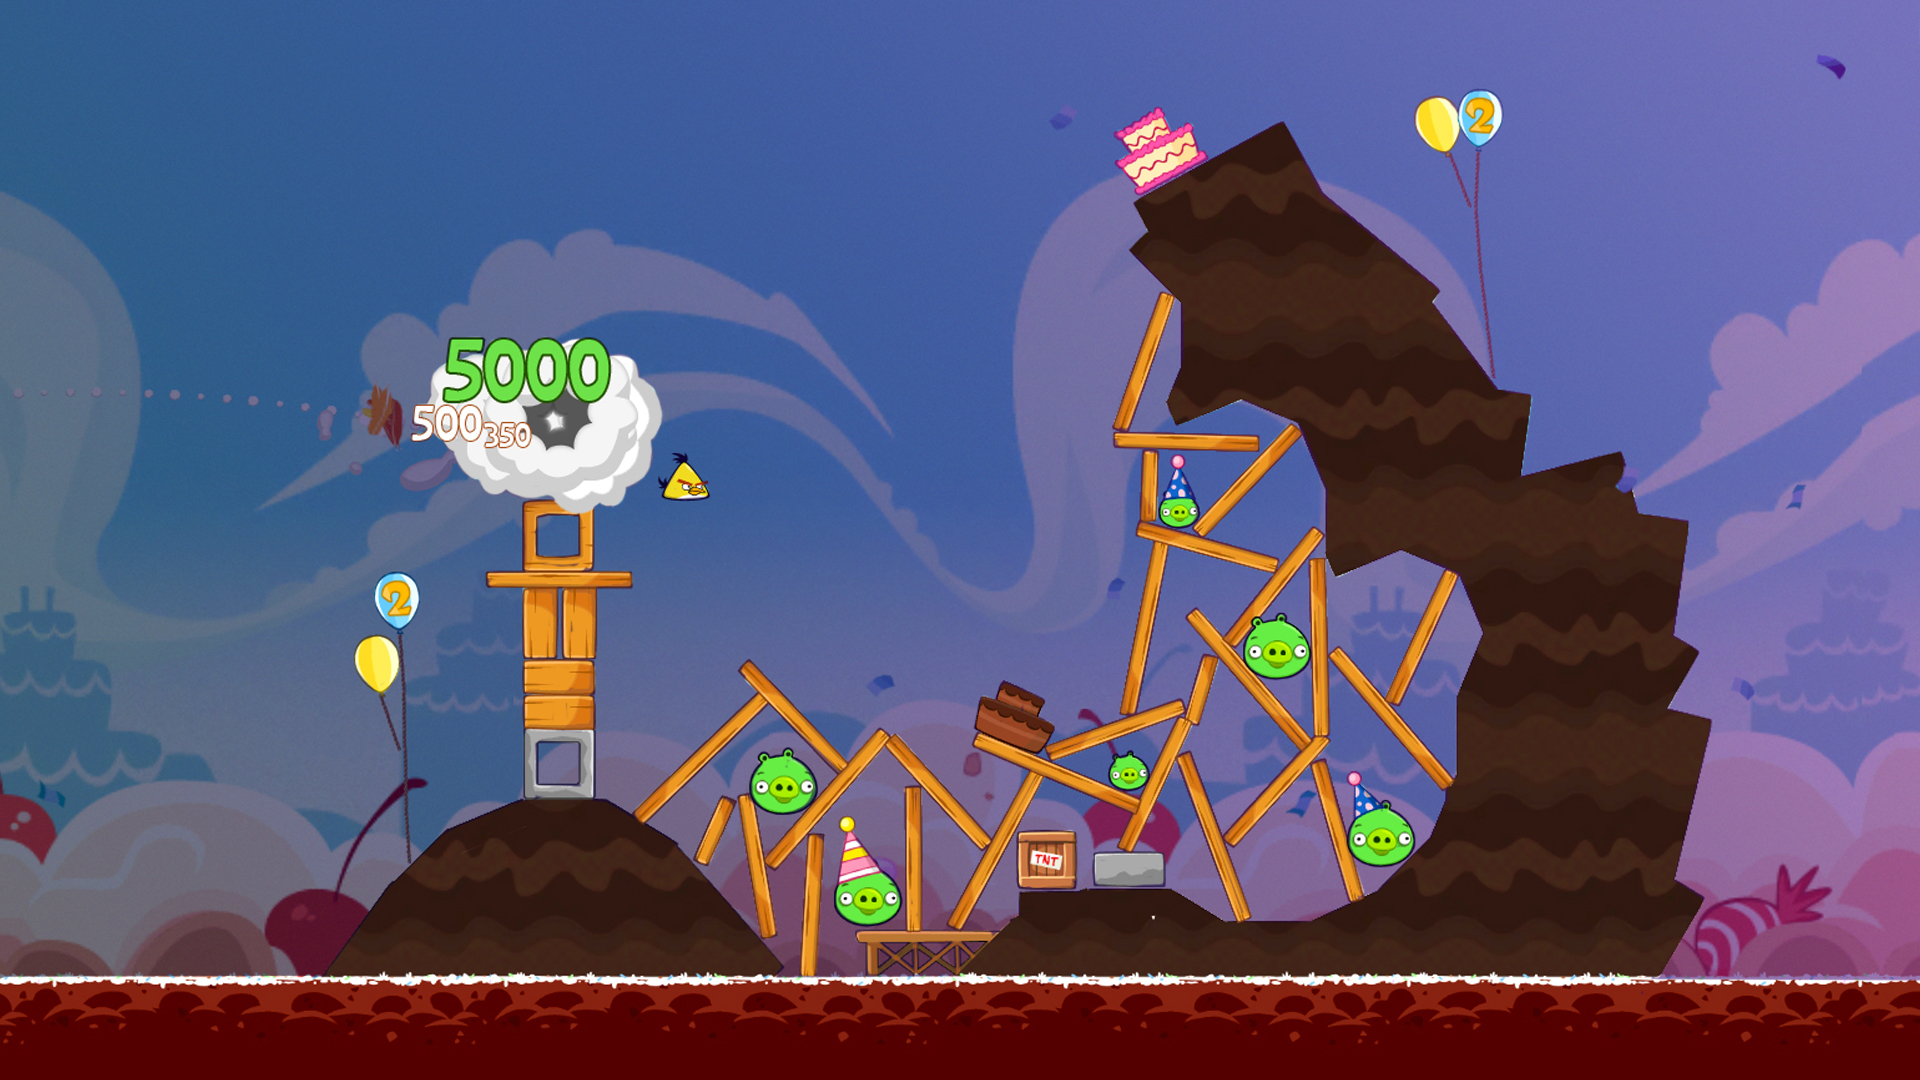 screen from Angry Birds video game